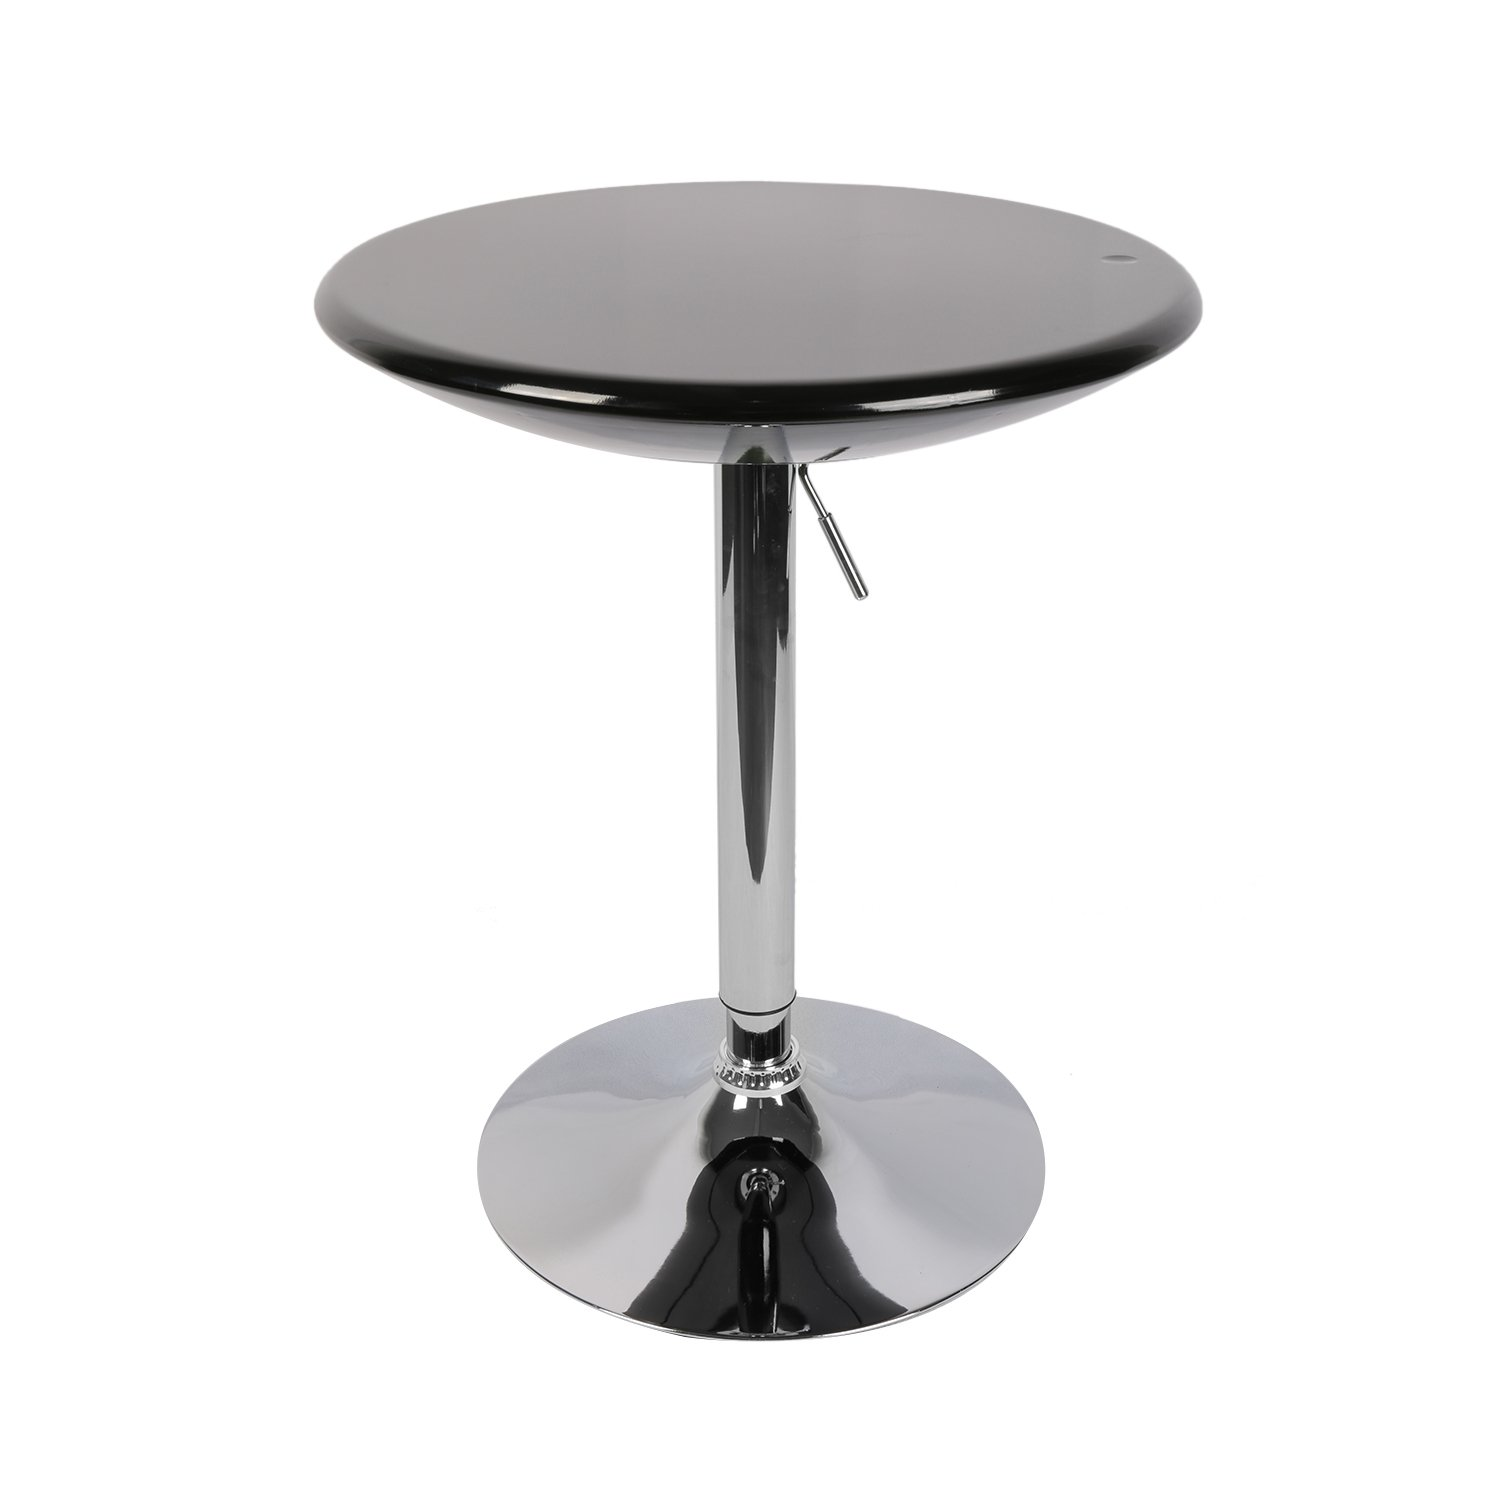 LCH Adjustable 360 Swivel Dining Bar Table Modern Round Kitchen Home Bar Furniture ABS Top Bistro Pub Table with Chromed Base, Black by LCH